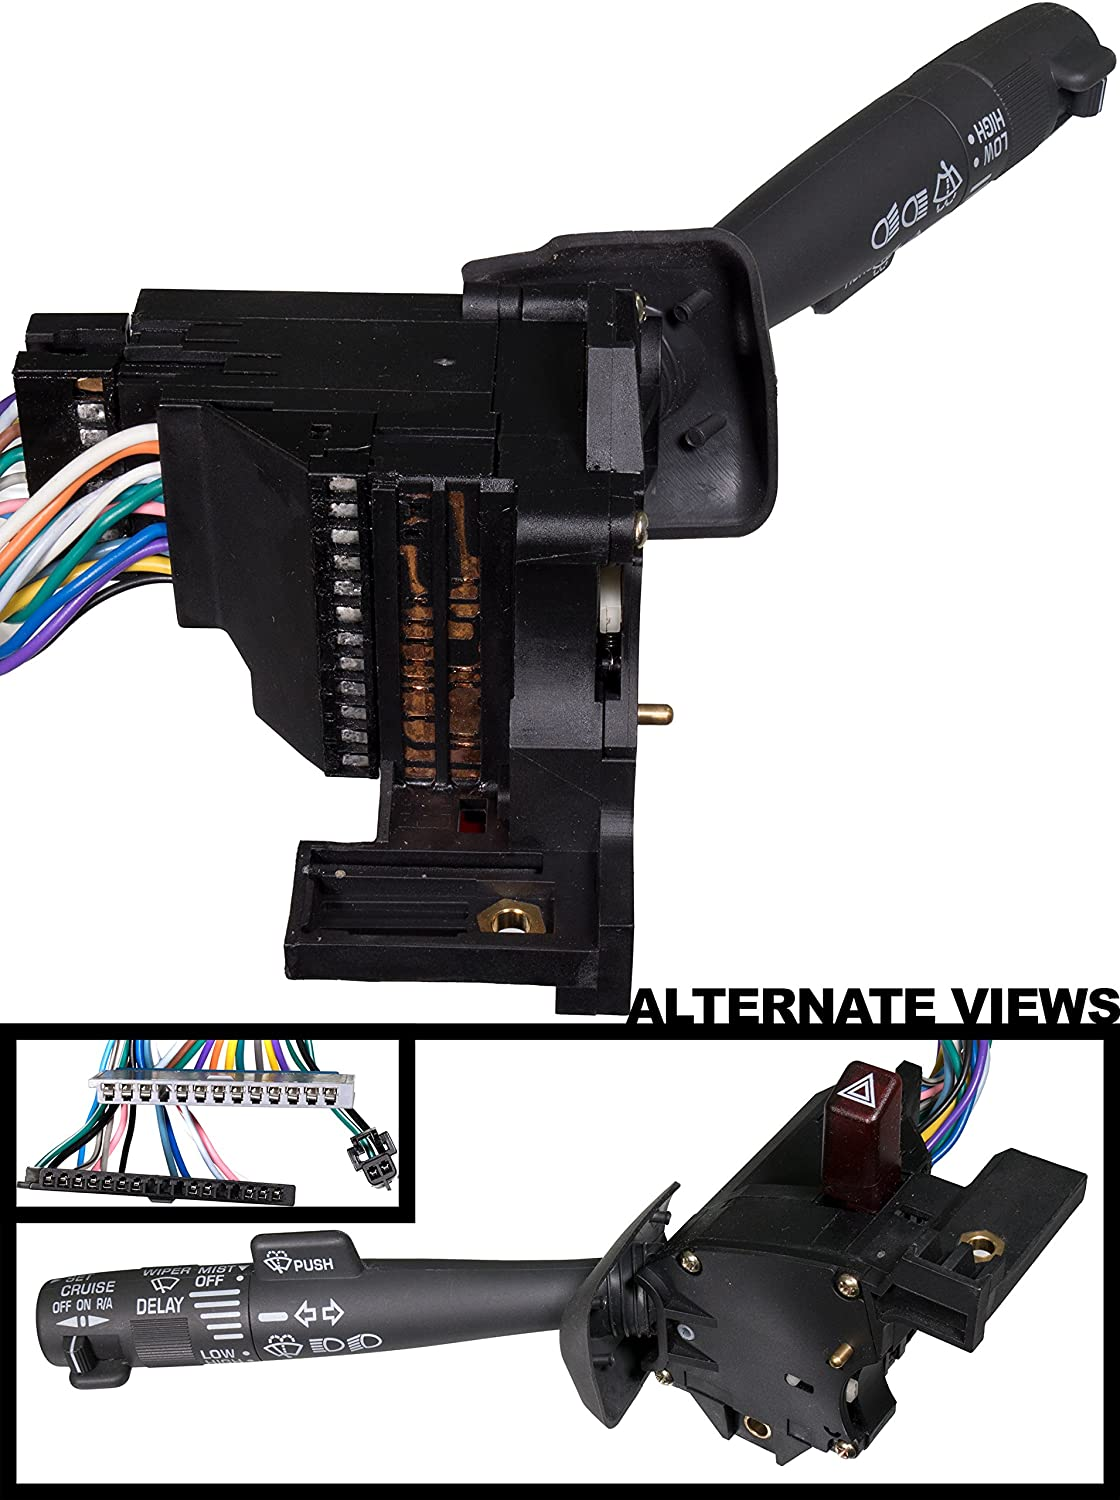 amazon com apdty multi function combination switch with turn 1987 Winnebago 22e Wiper Cruse Signal Wiring Diagram amazon com apdty multi function combination switch with turn signal wiper washer hazard switch and cruise control for models with tilt steering automotive